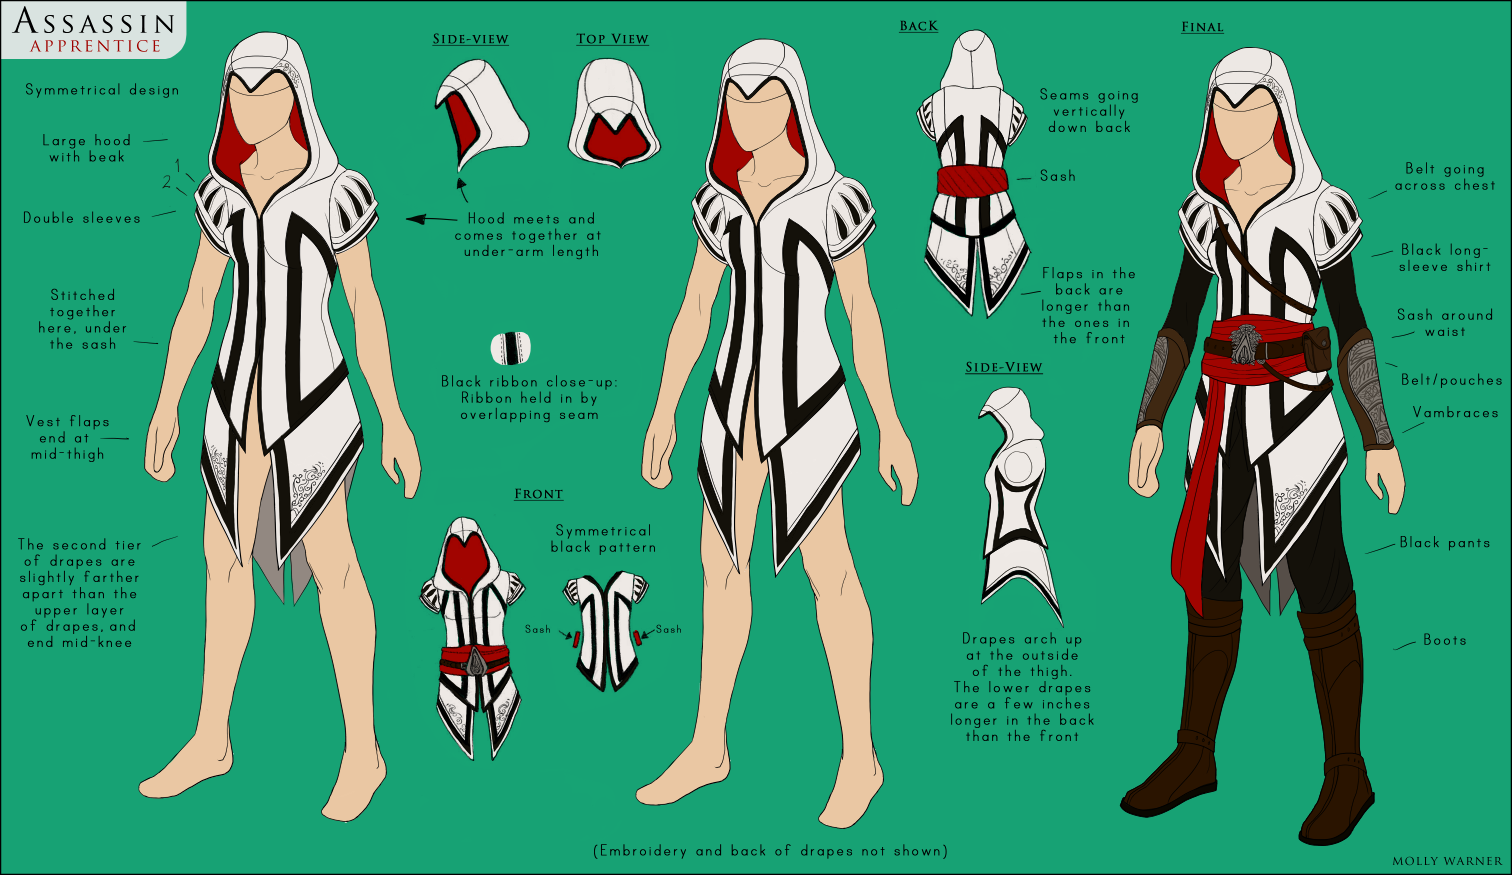 Assassin Costume Design By Silverskittle On Deviantart